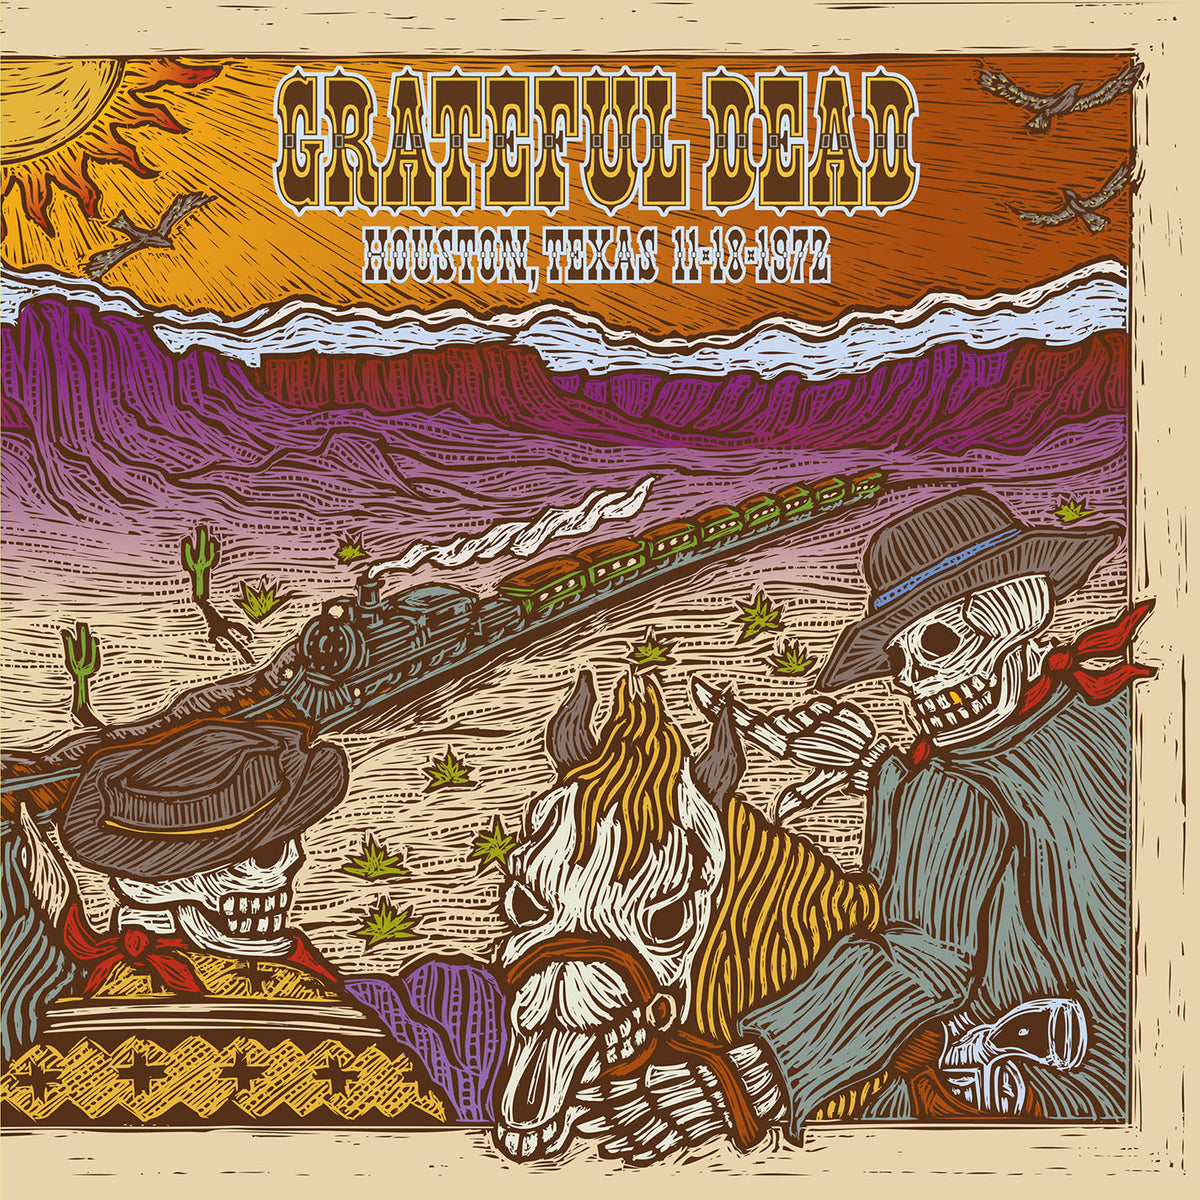 Grateful Dead: 11/18/72 Hofheinz Pavilion, Houston, TX (180g) Vinyl 2LP (Record Store Day)